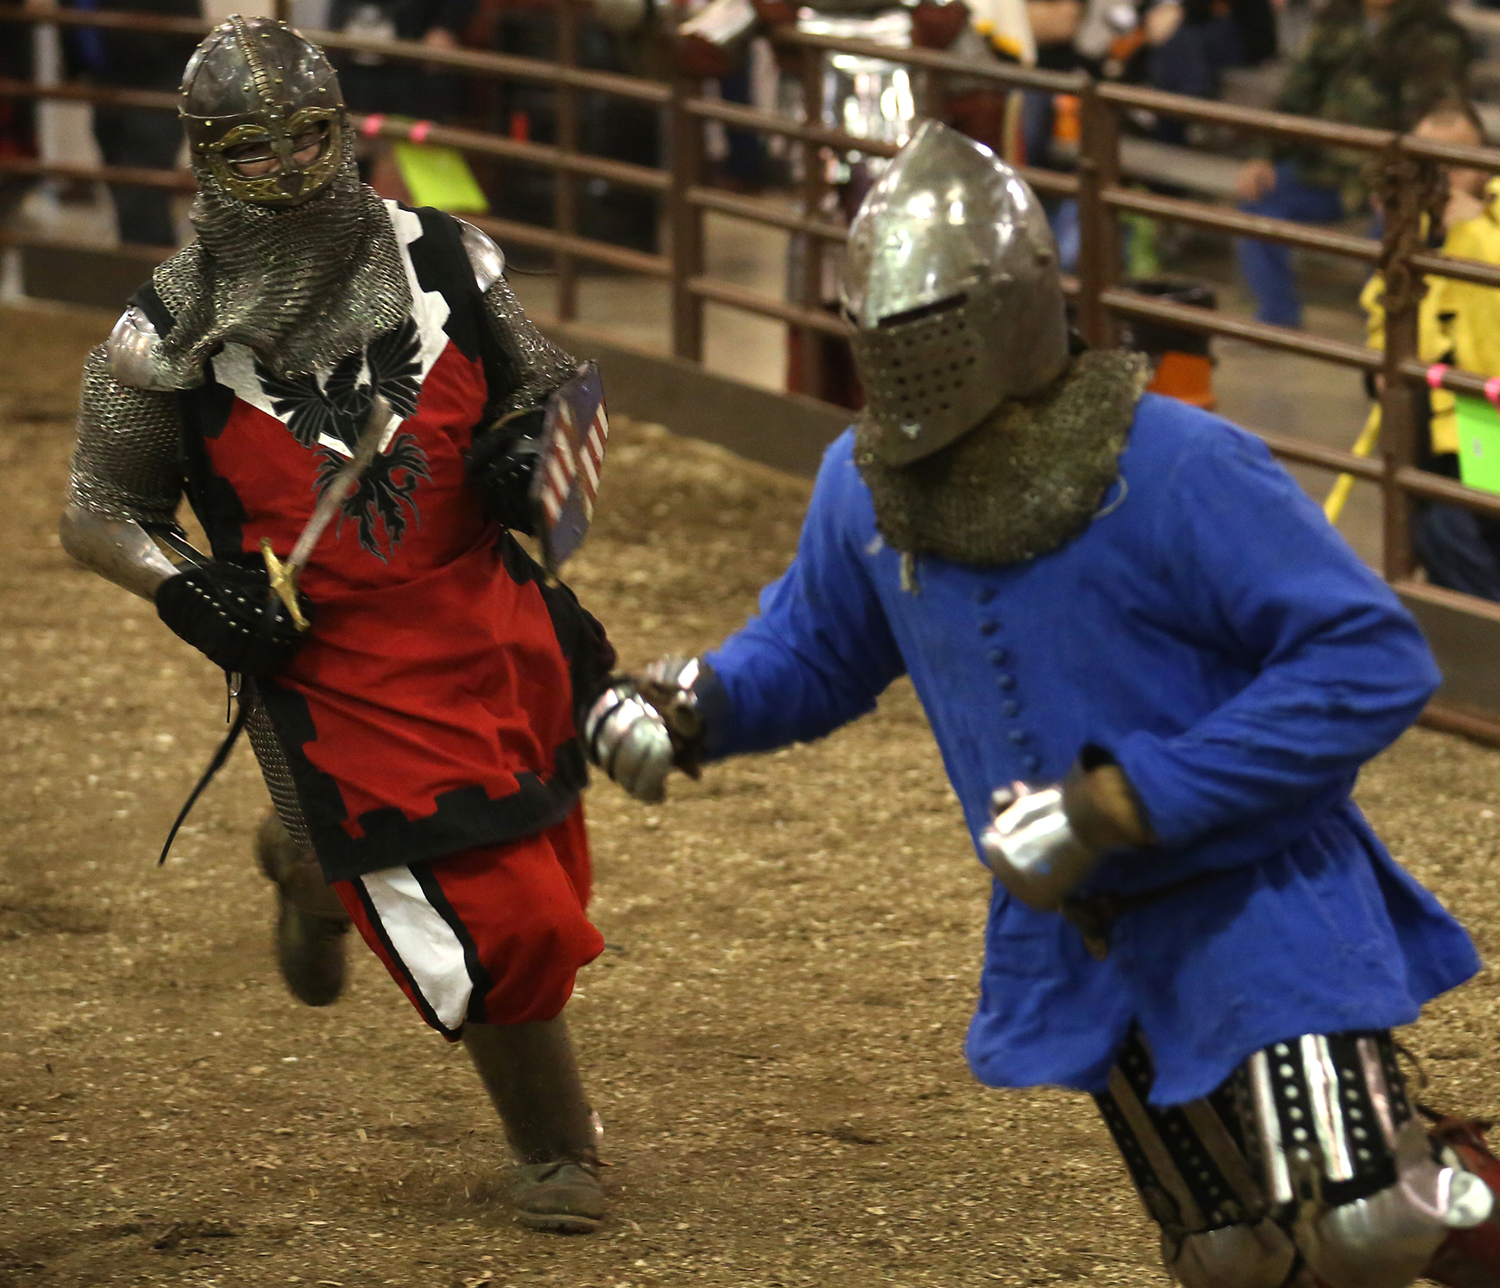 A fighter from Team Syabri Belarus who lost his weapon is chased by an opponent from the Company of the Iron Phoenix. The Medieval battle competition Battle of the Nations International Tournament of Chivalry took place at the Livestock Center on the Illinois State Fairgrounds in Springfield on Saturday, Oct. 18, 2014. Armored sword fighters competed in the full contact sport individually and as teams from around the world for medals. David Spencer/The State Journal-Register